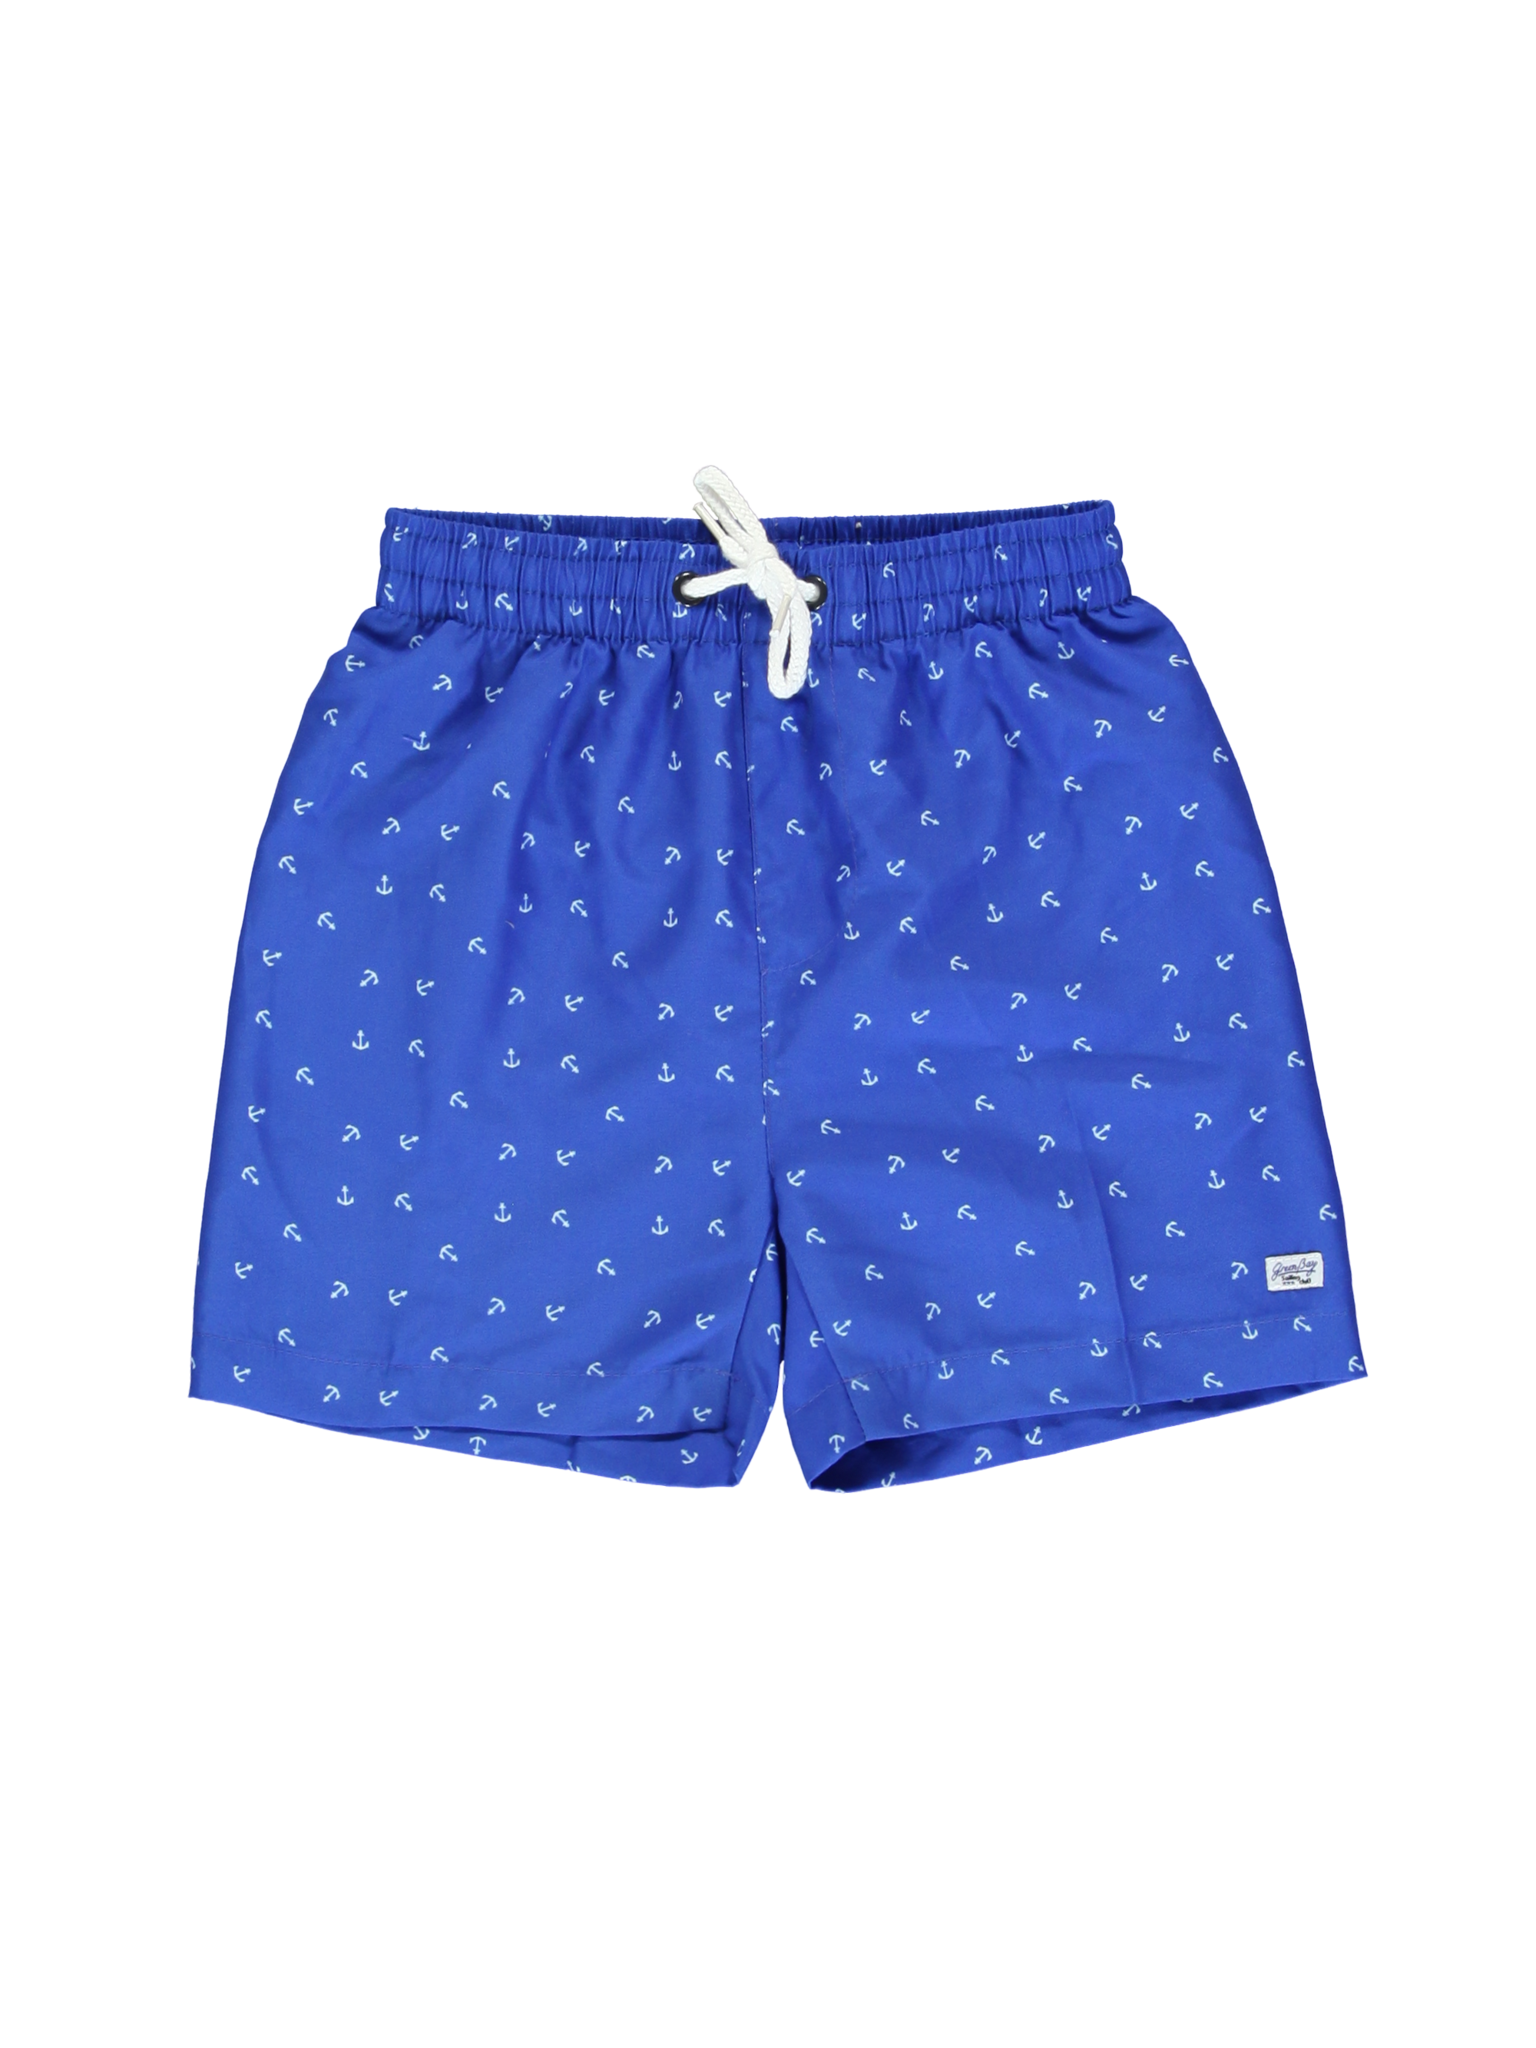 All Brands | Summerproducts Small Boys | Swimwear | 12 pcs/box